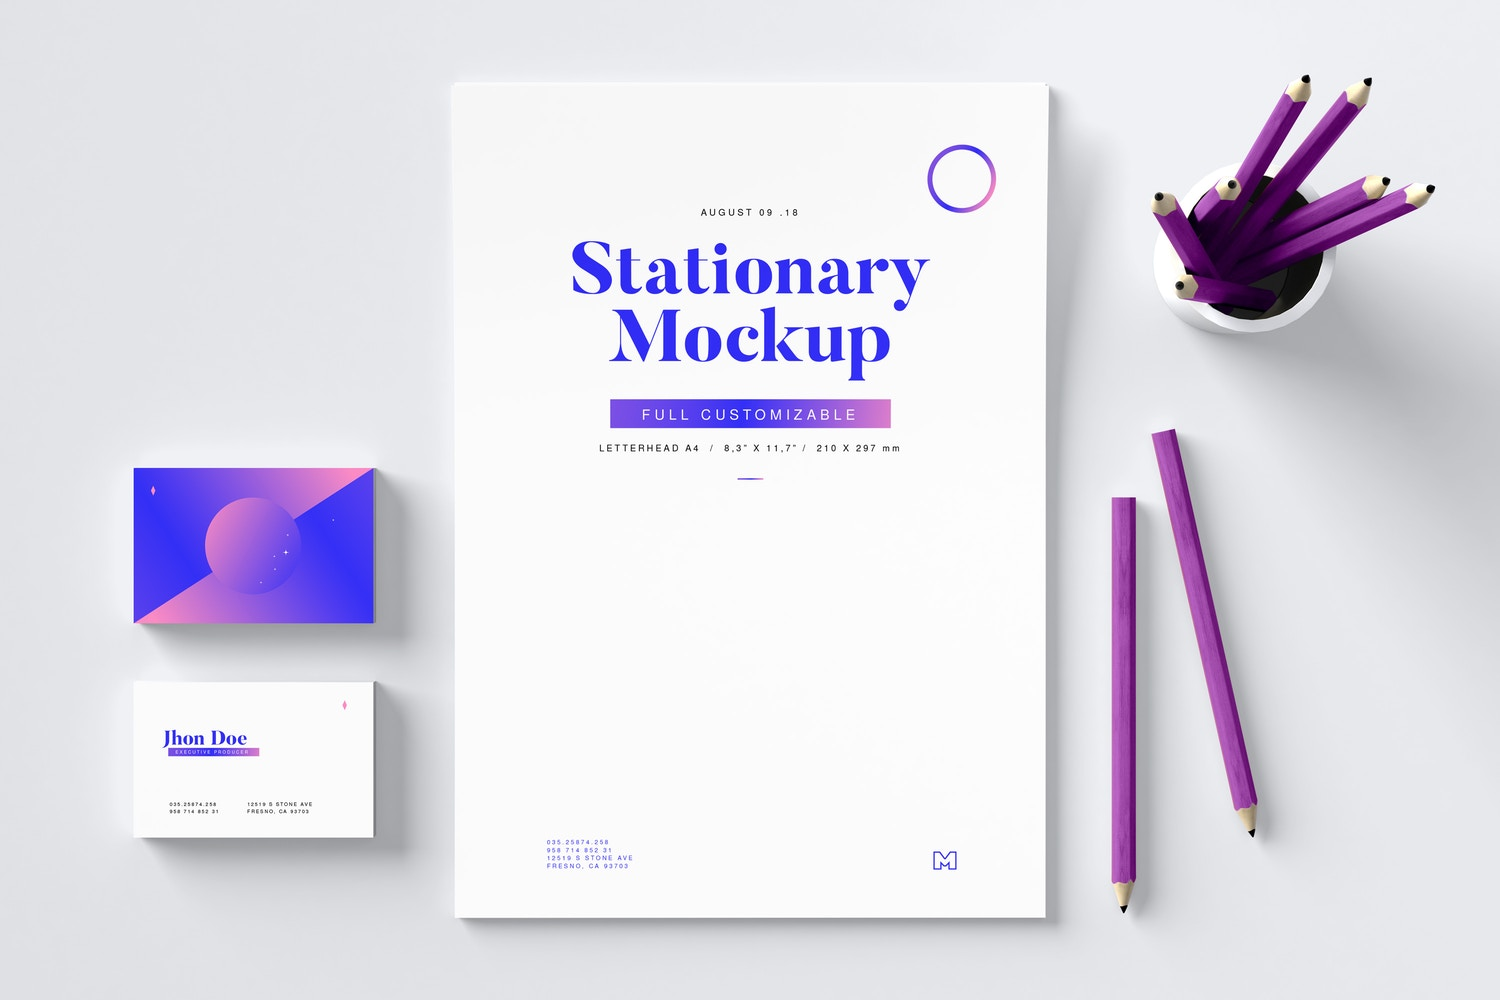 Stationery Mockup 02 by Original Mockups on Original Mockups